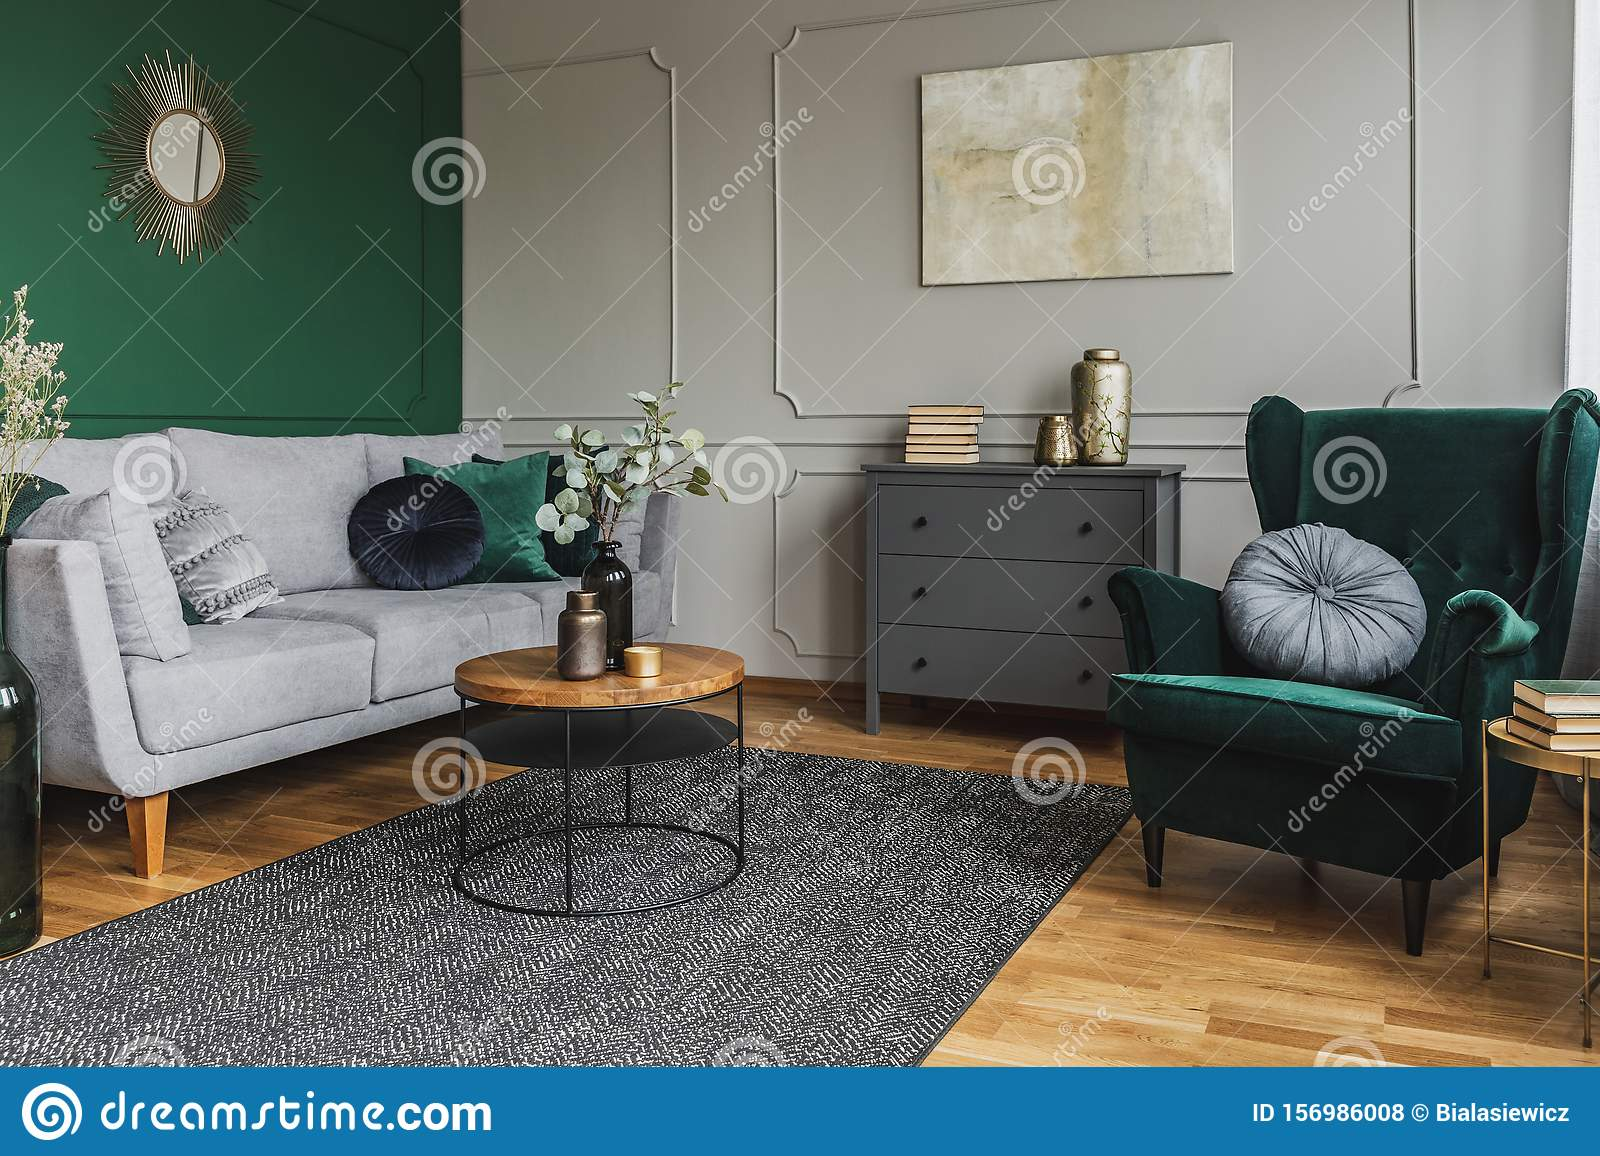 Emerald Green Wing Back Chair With Pillow In Grey Living Room Interior With Wooden Commode Stock Photo Image Of Bright Comfortable 156986008